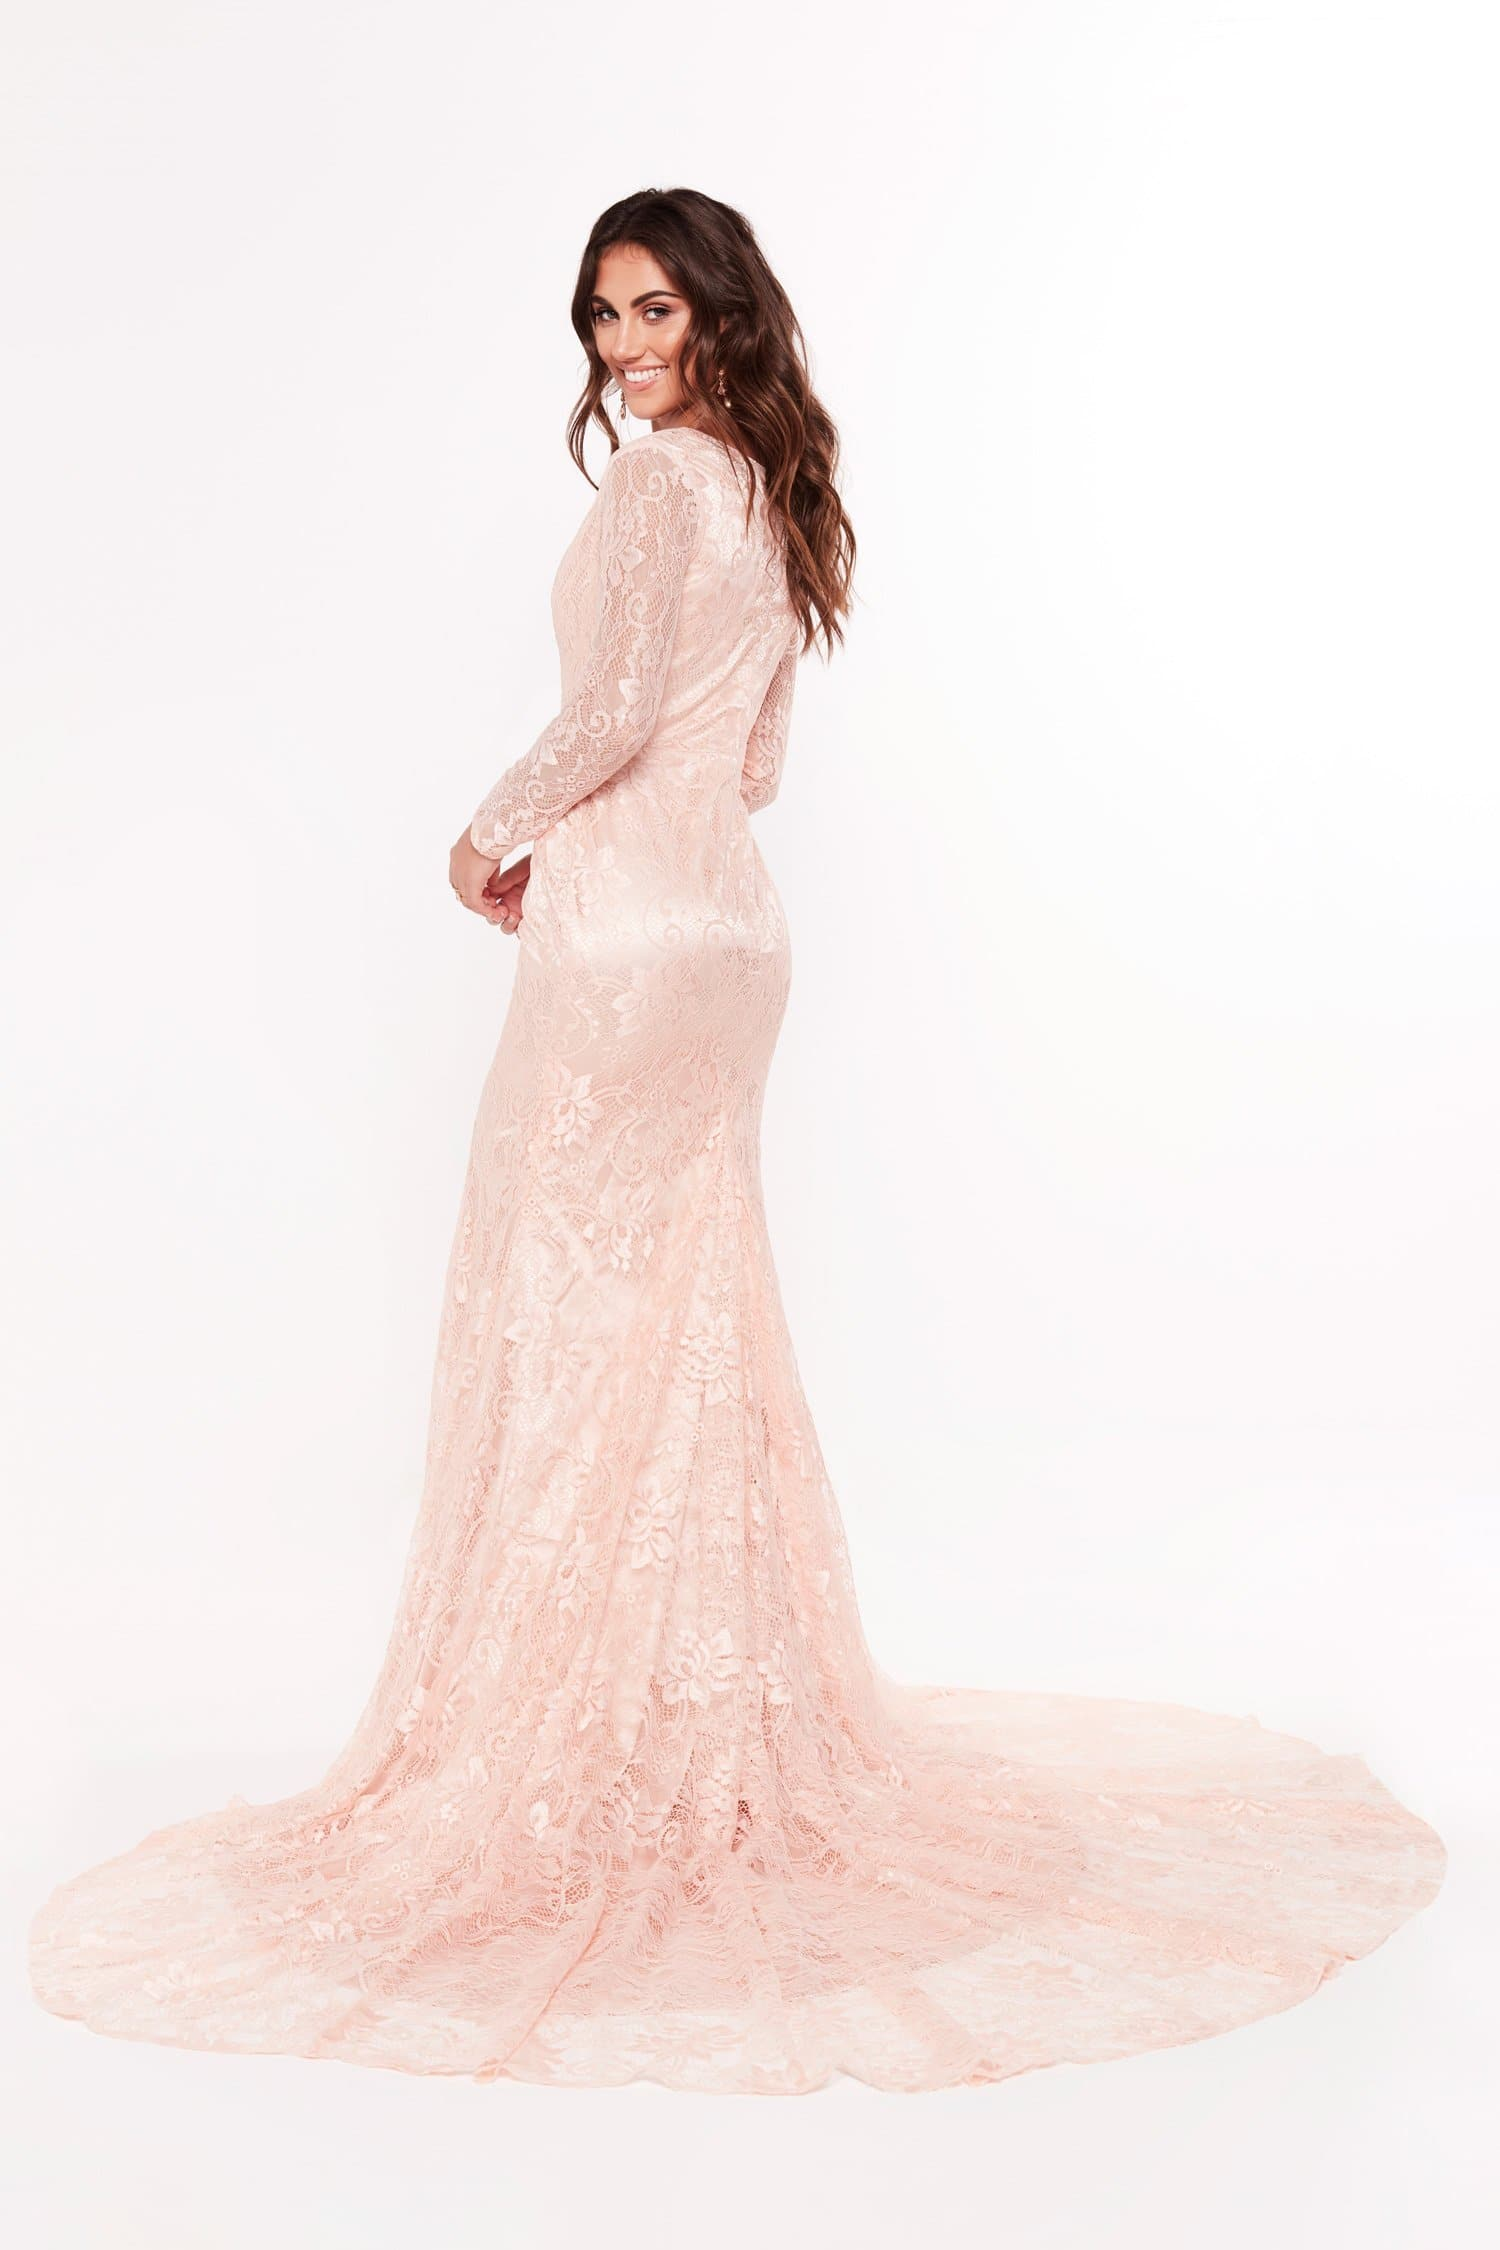 A&N Renee - Peach Lace Gown with Long Sleeves and V Neckline